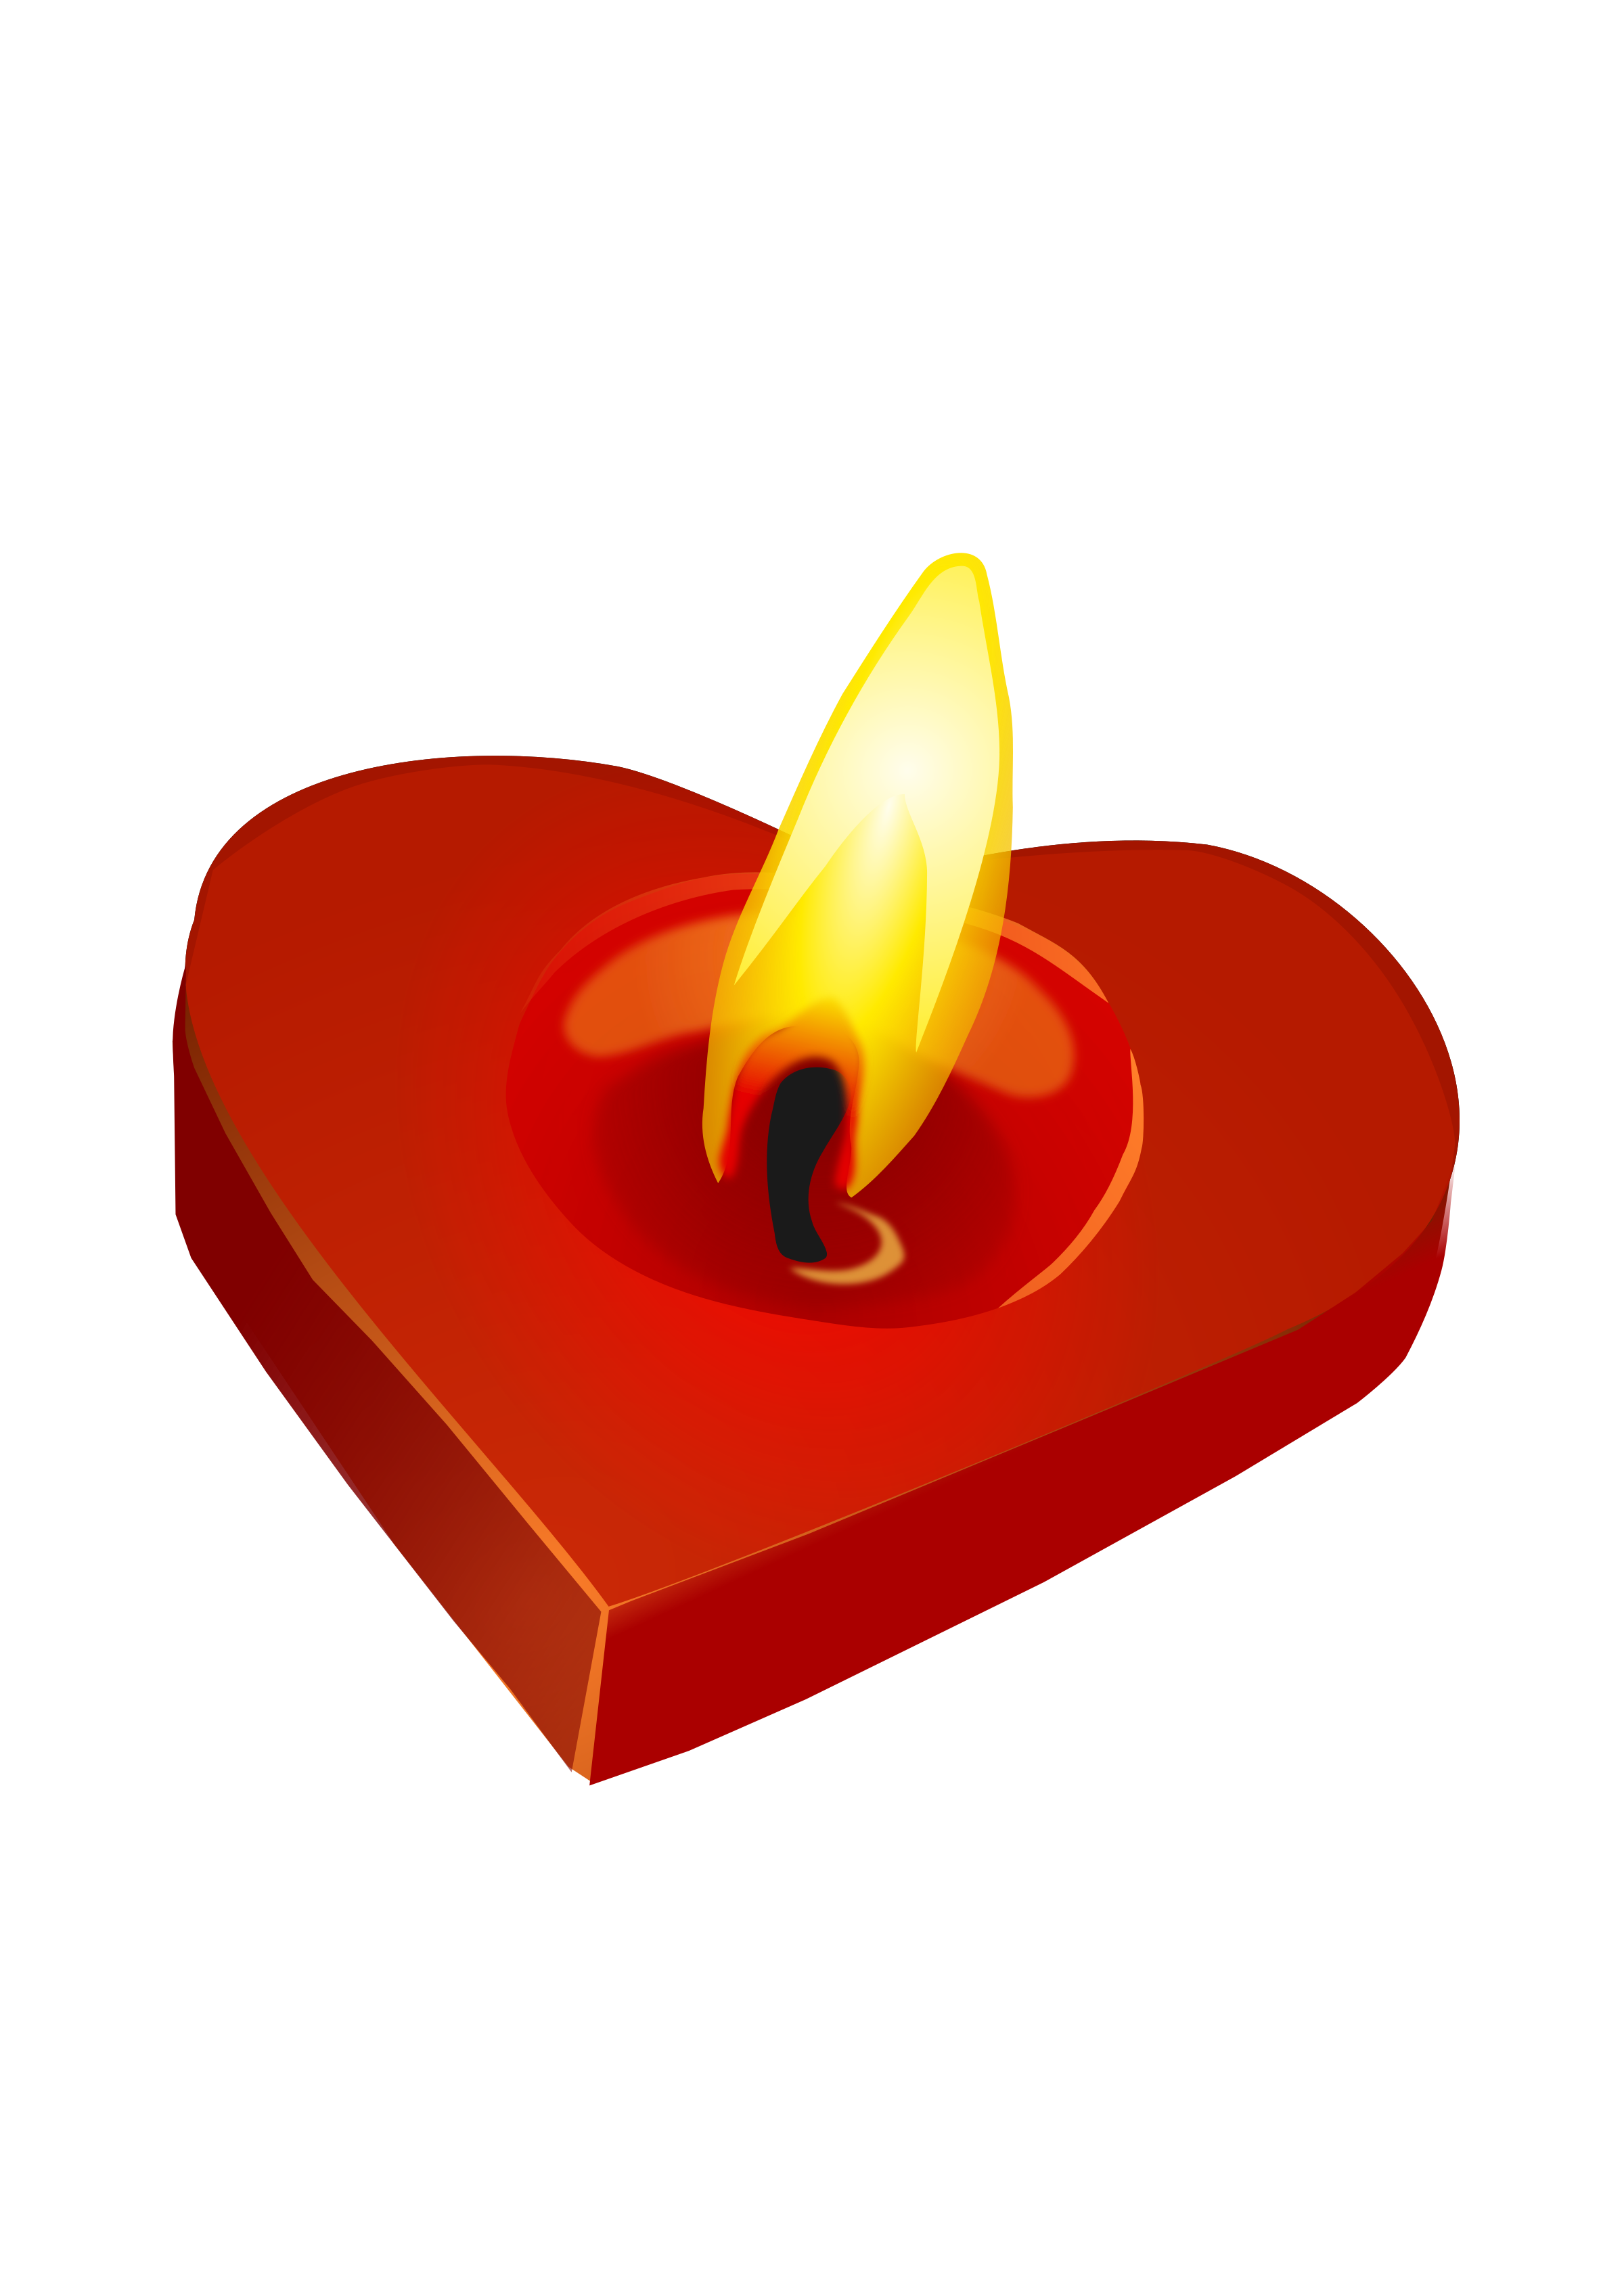 Valentine's Candle by amilo